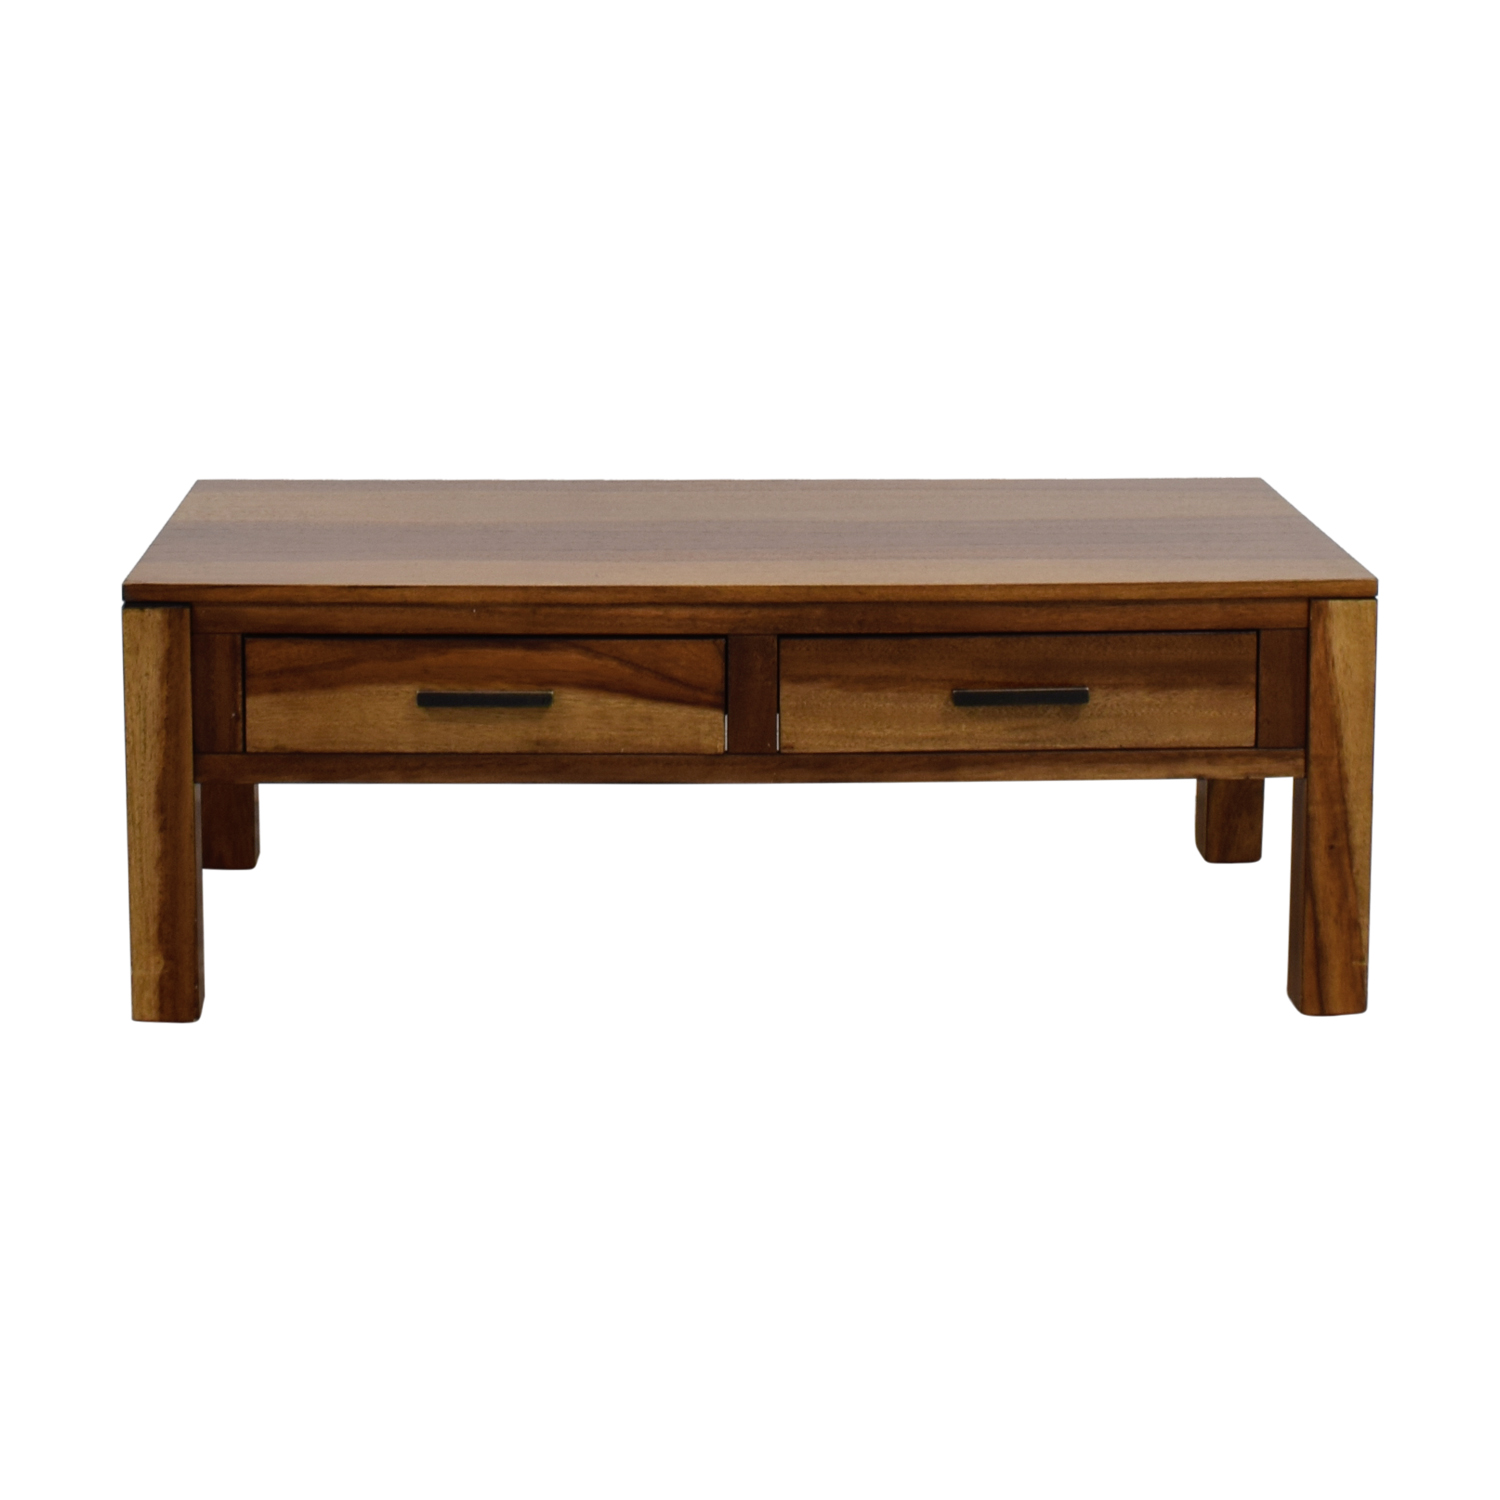 69 off coaster coaster coffee table with two drawers for Coffee table sets with drawers